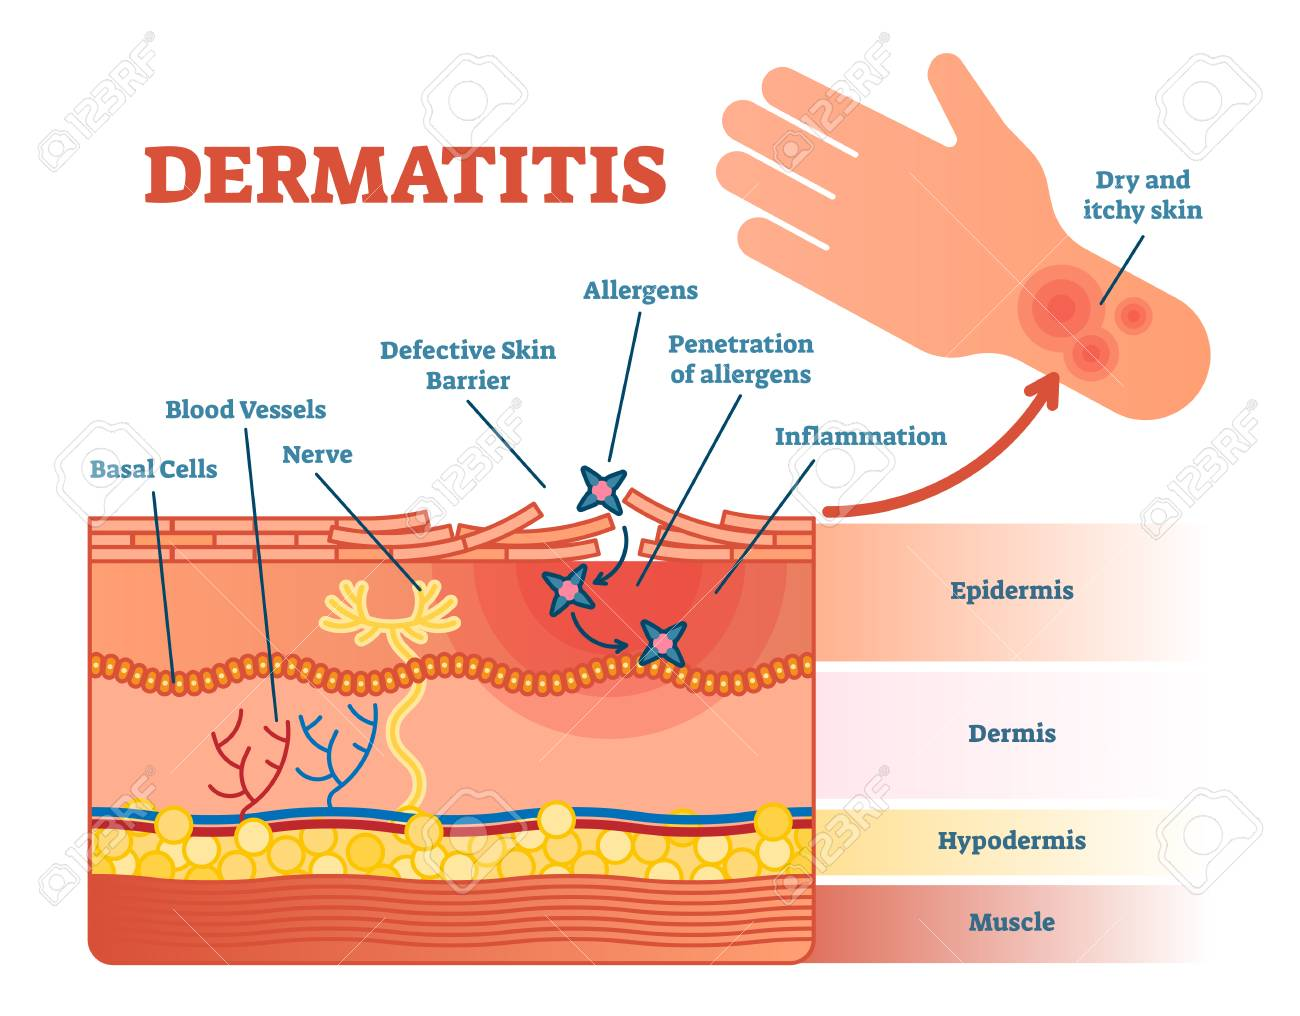 dermatitis flat vector illustration diagram with skin layers and allergen  movement  educational medical information